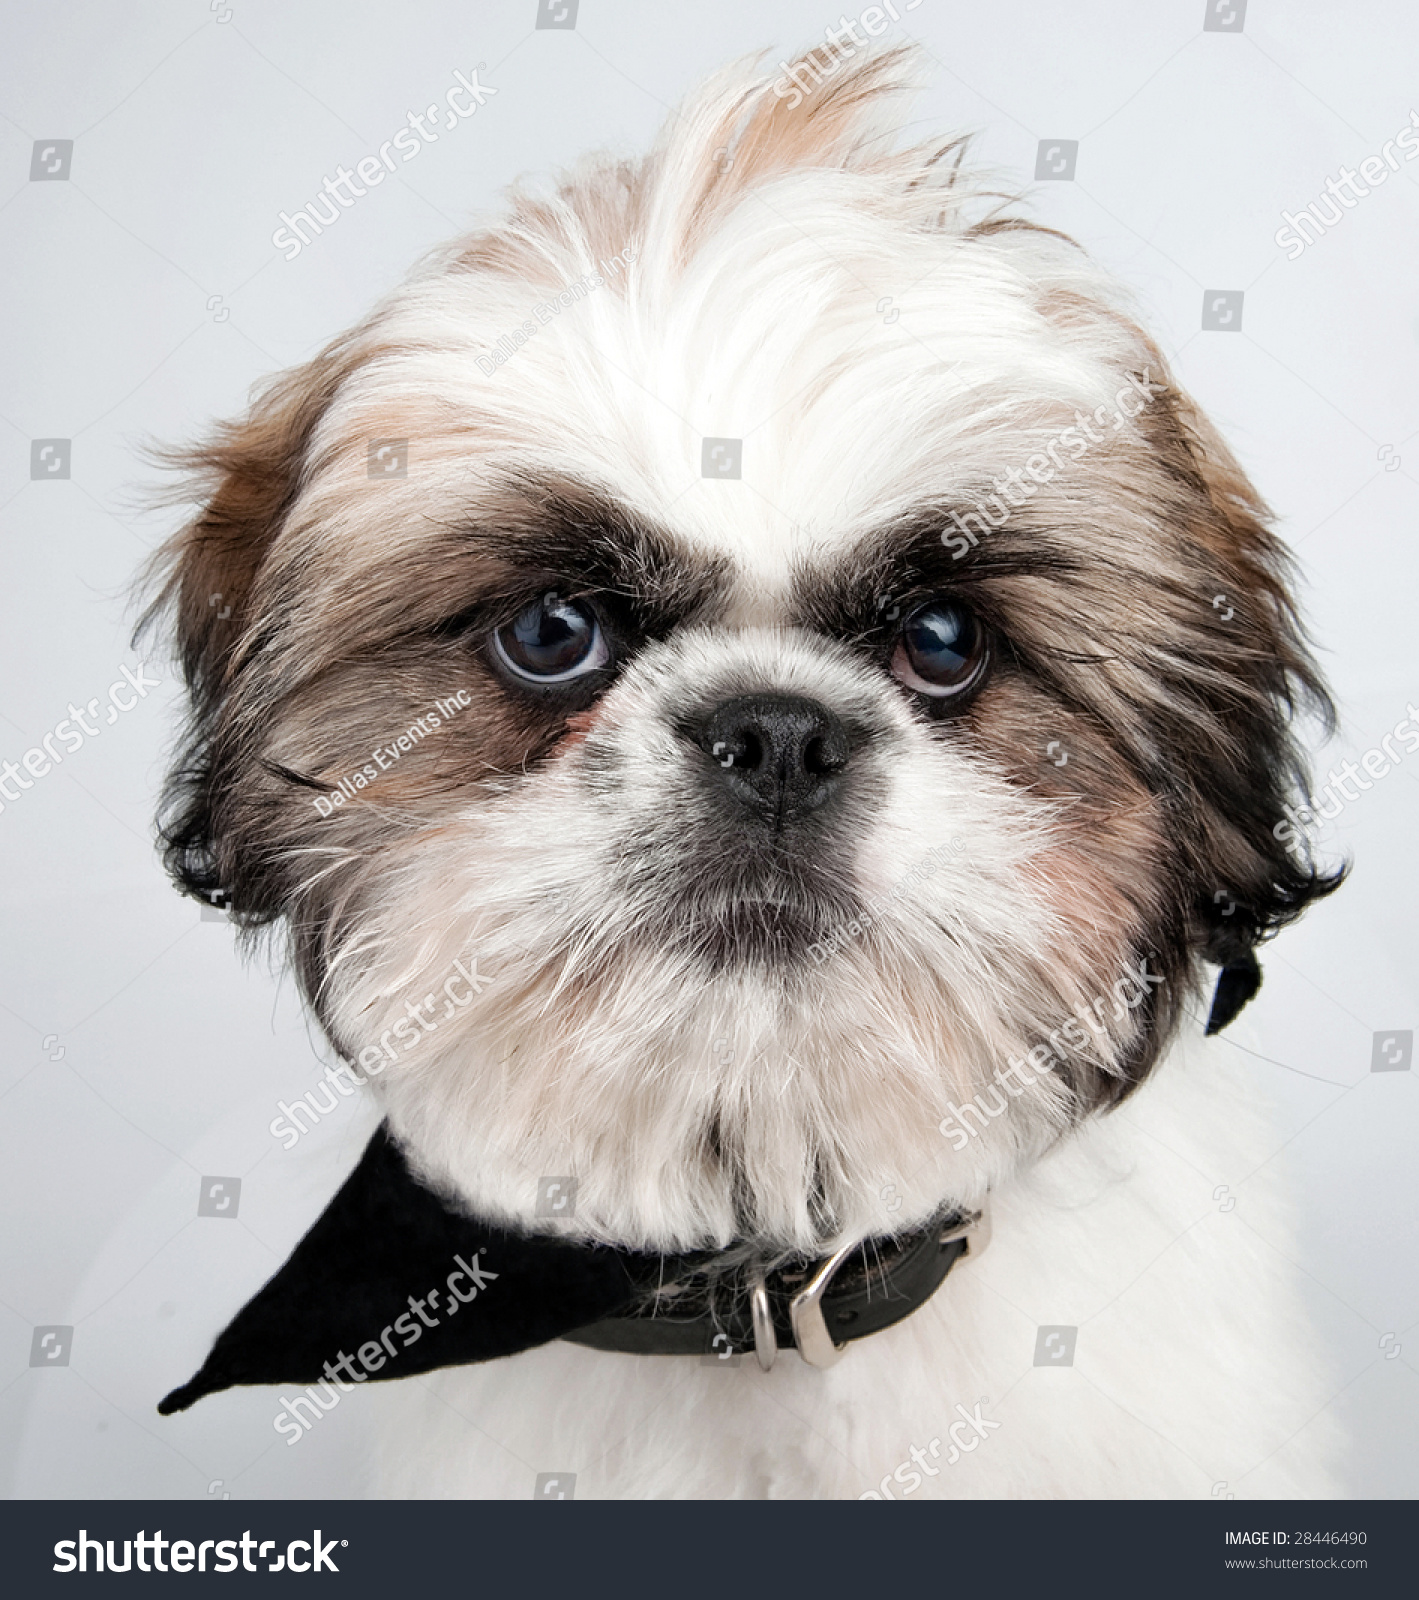 4 month old shih tzu closeup image 4 month old shih stock photo 28446490 8654